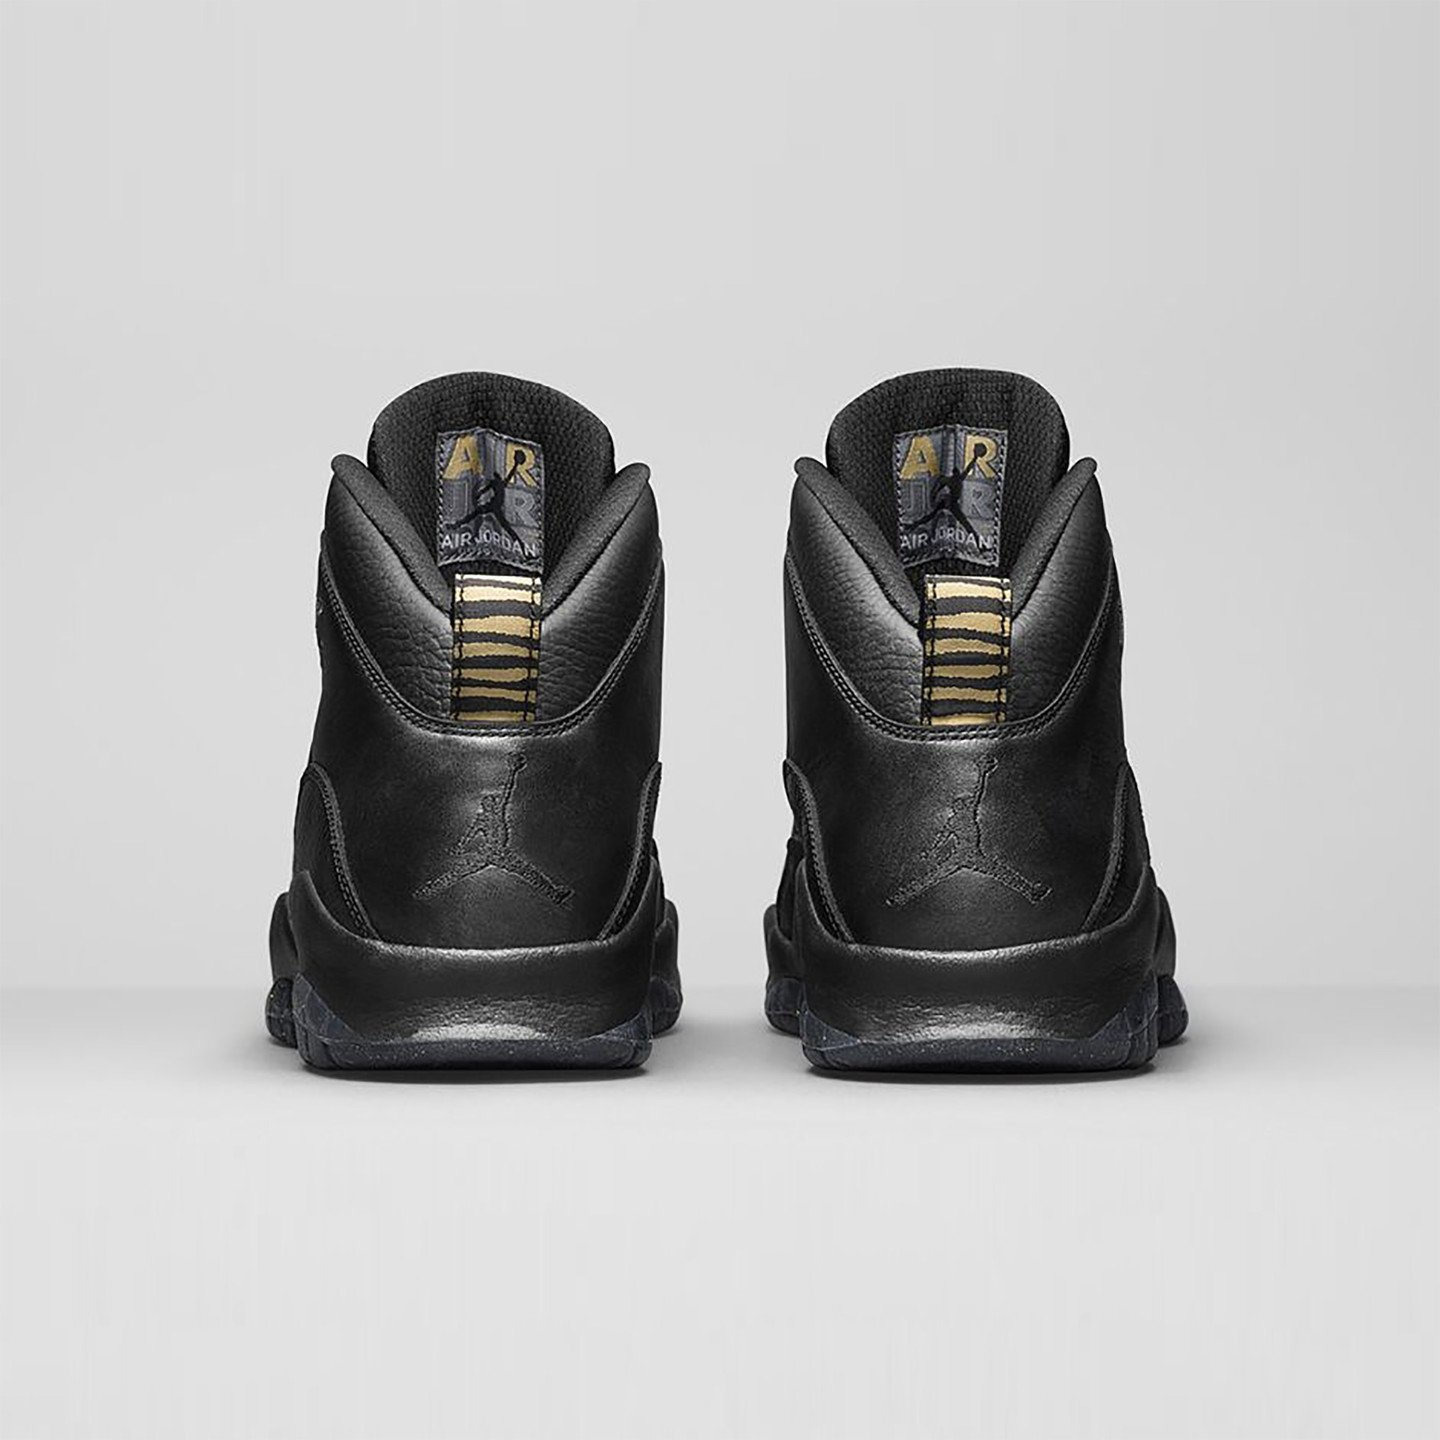 Jordan Air Jordan 10 Retro 'NYC' Black / Metallic Gold 310805-012-43